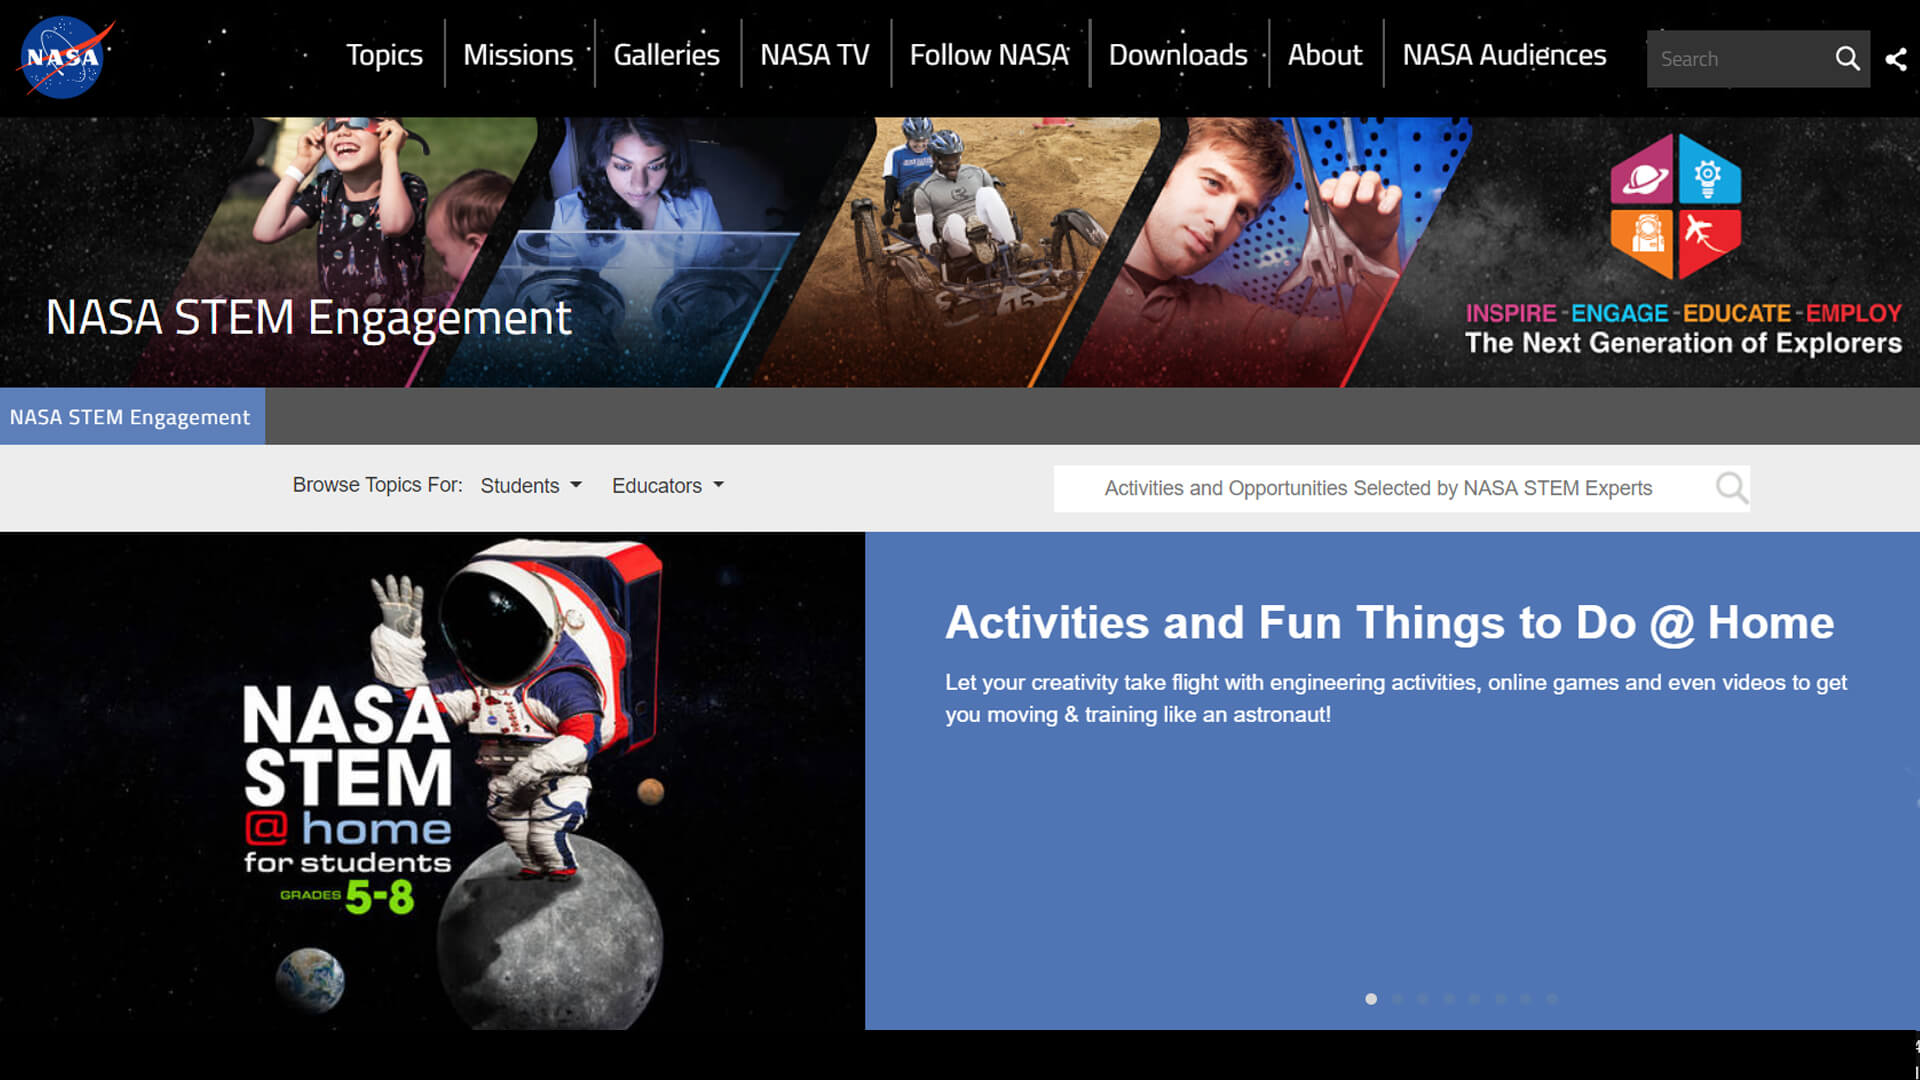 Image of NASA STEM Engagement website